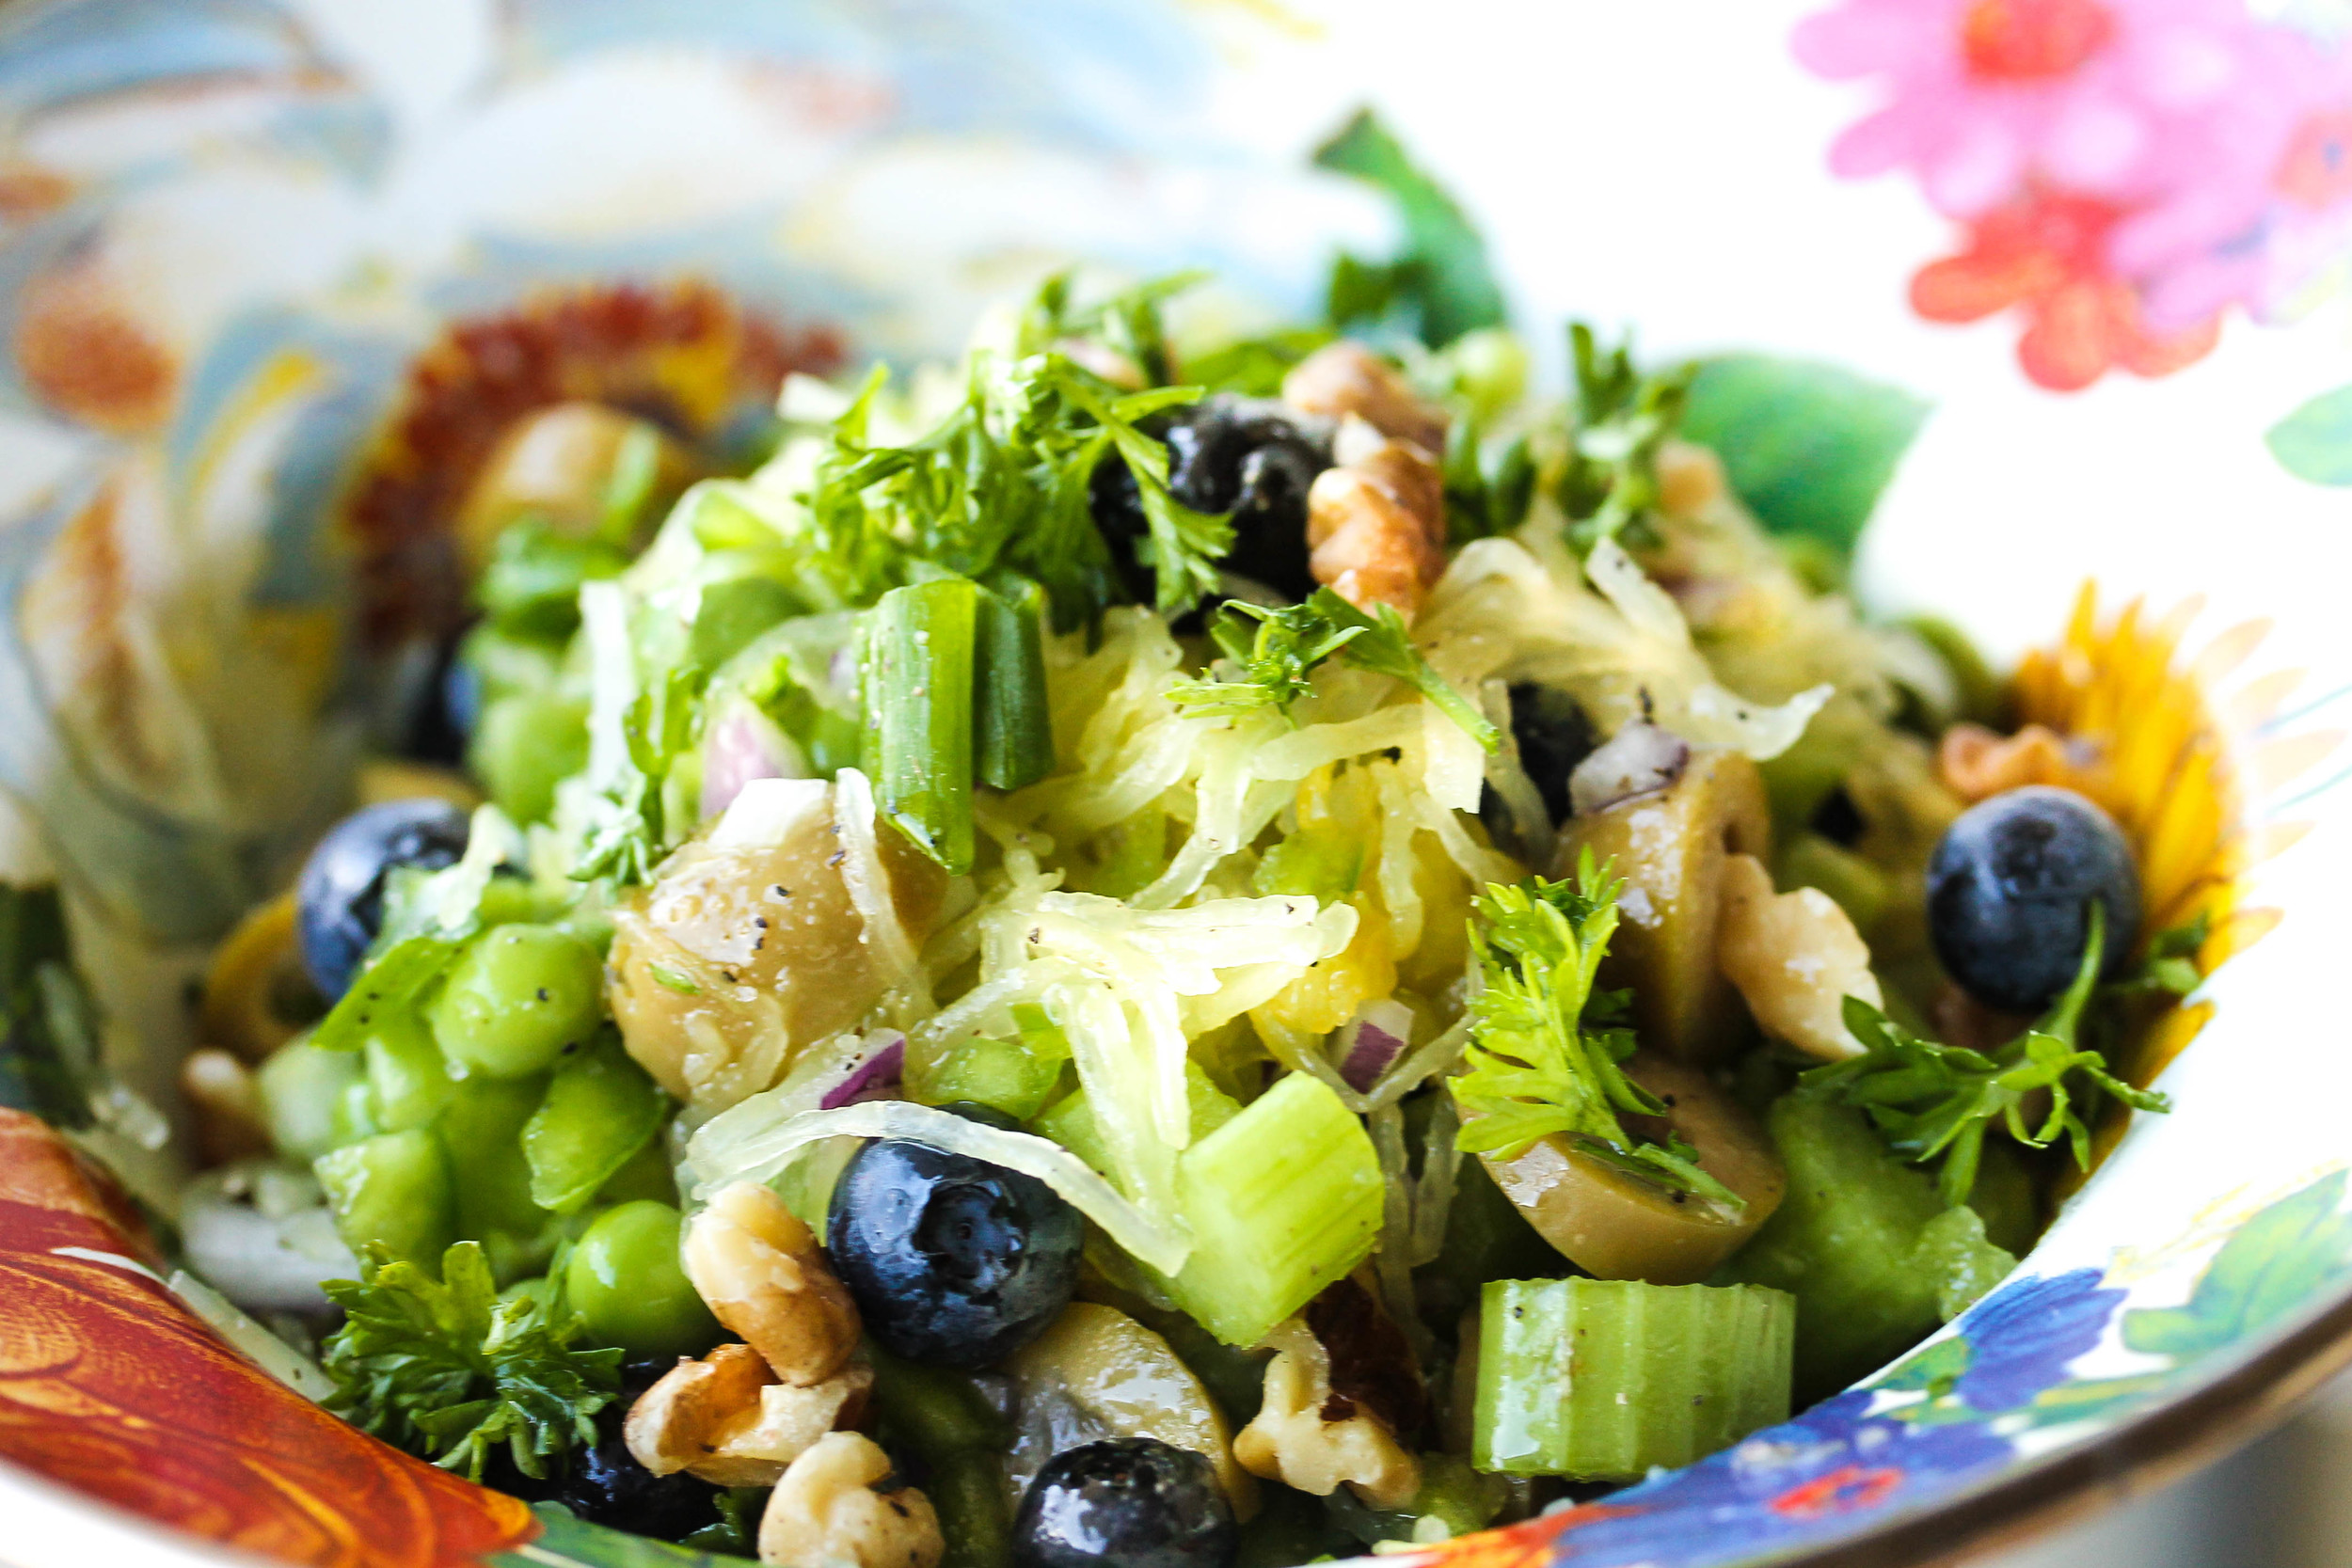 Slice celery,dice green pepper and onion, and mix with blueberries, peas, walnuts, and green olives. Gently mix with squash.